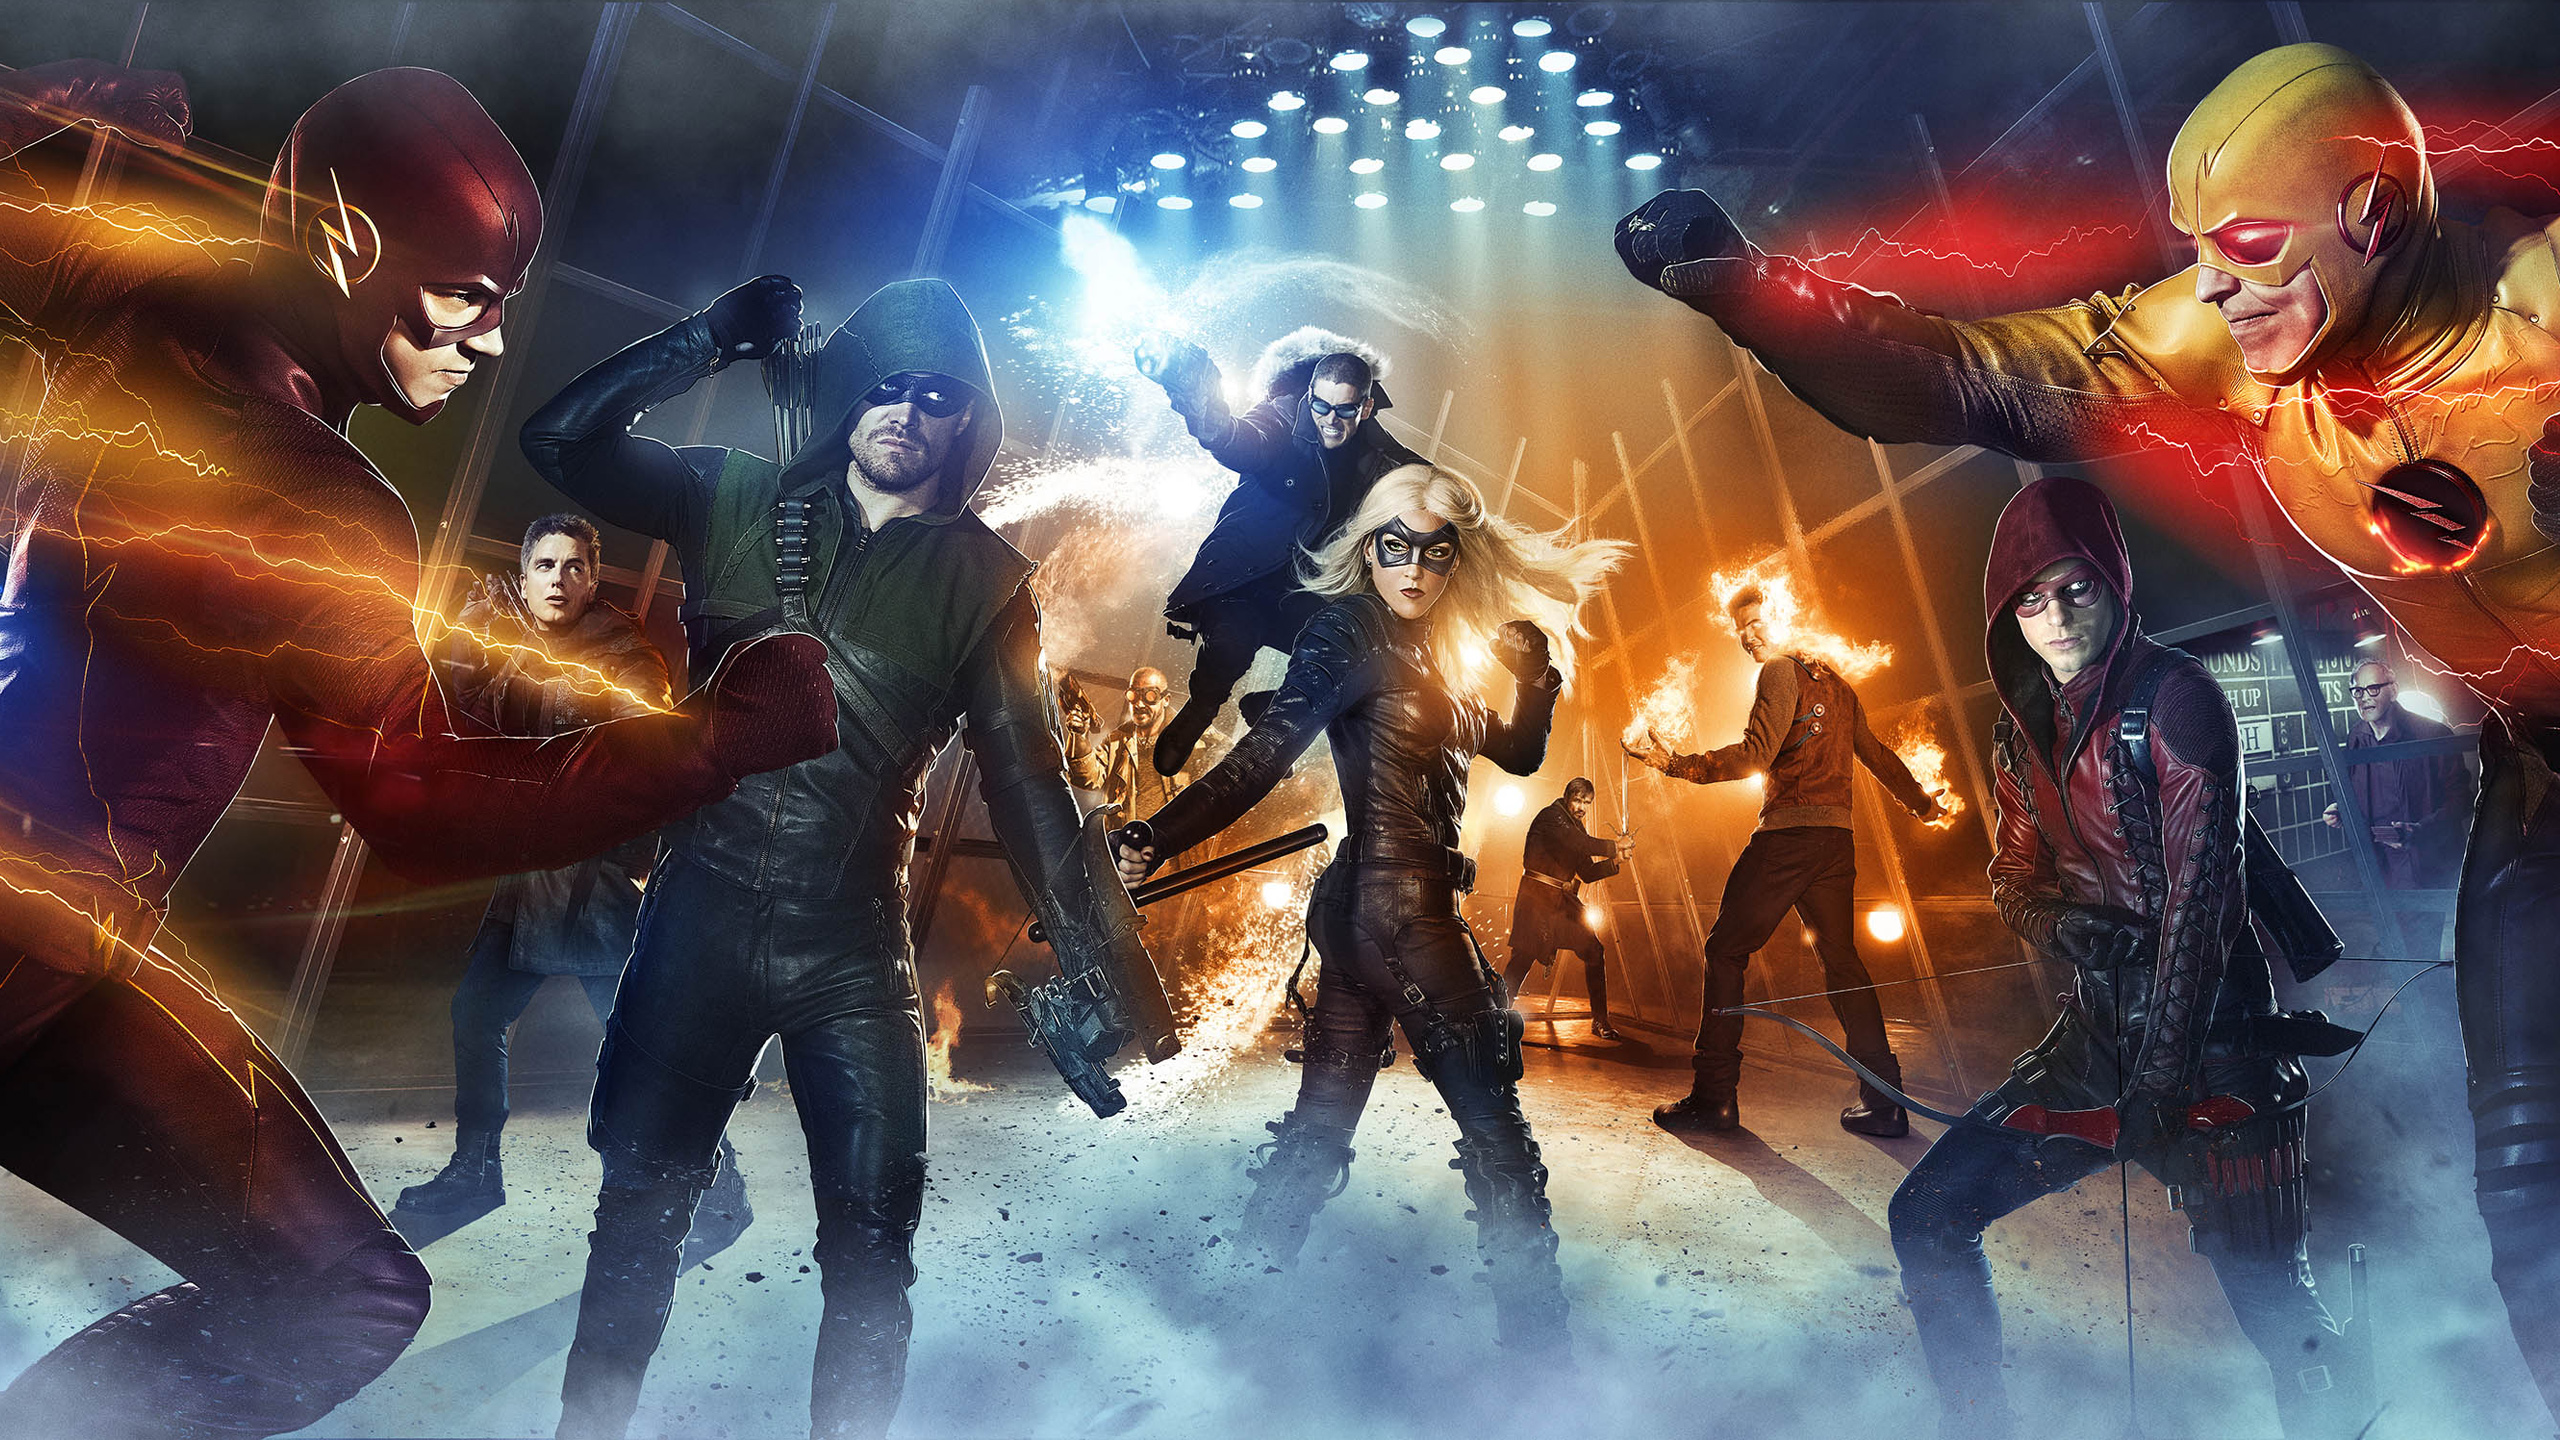 HD Wallpapers Arrow & The Flash